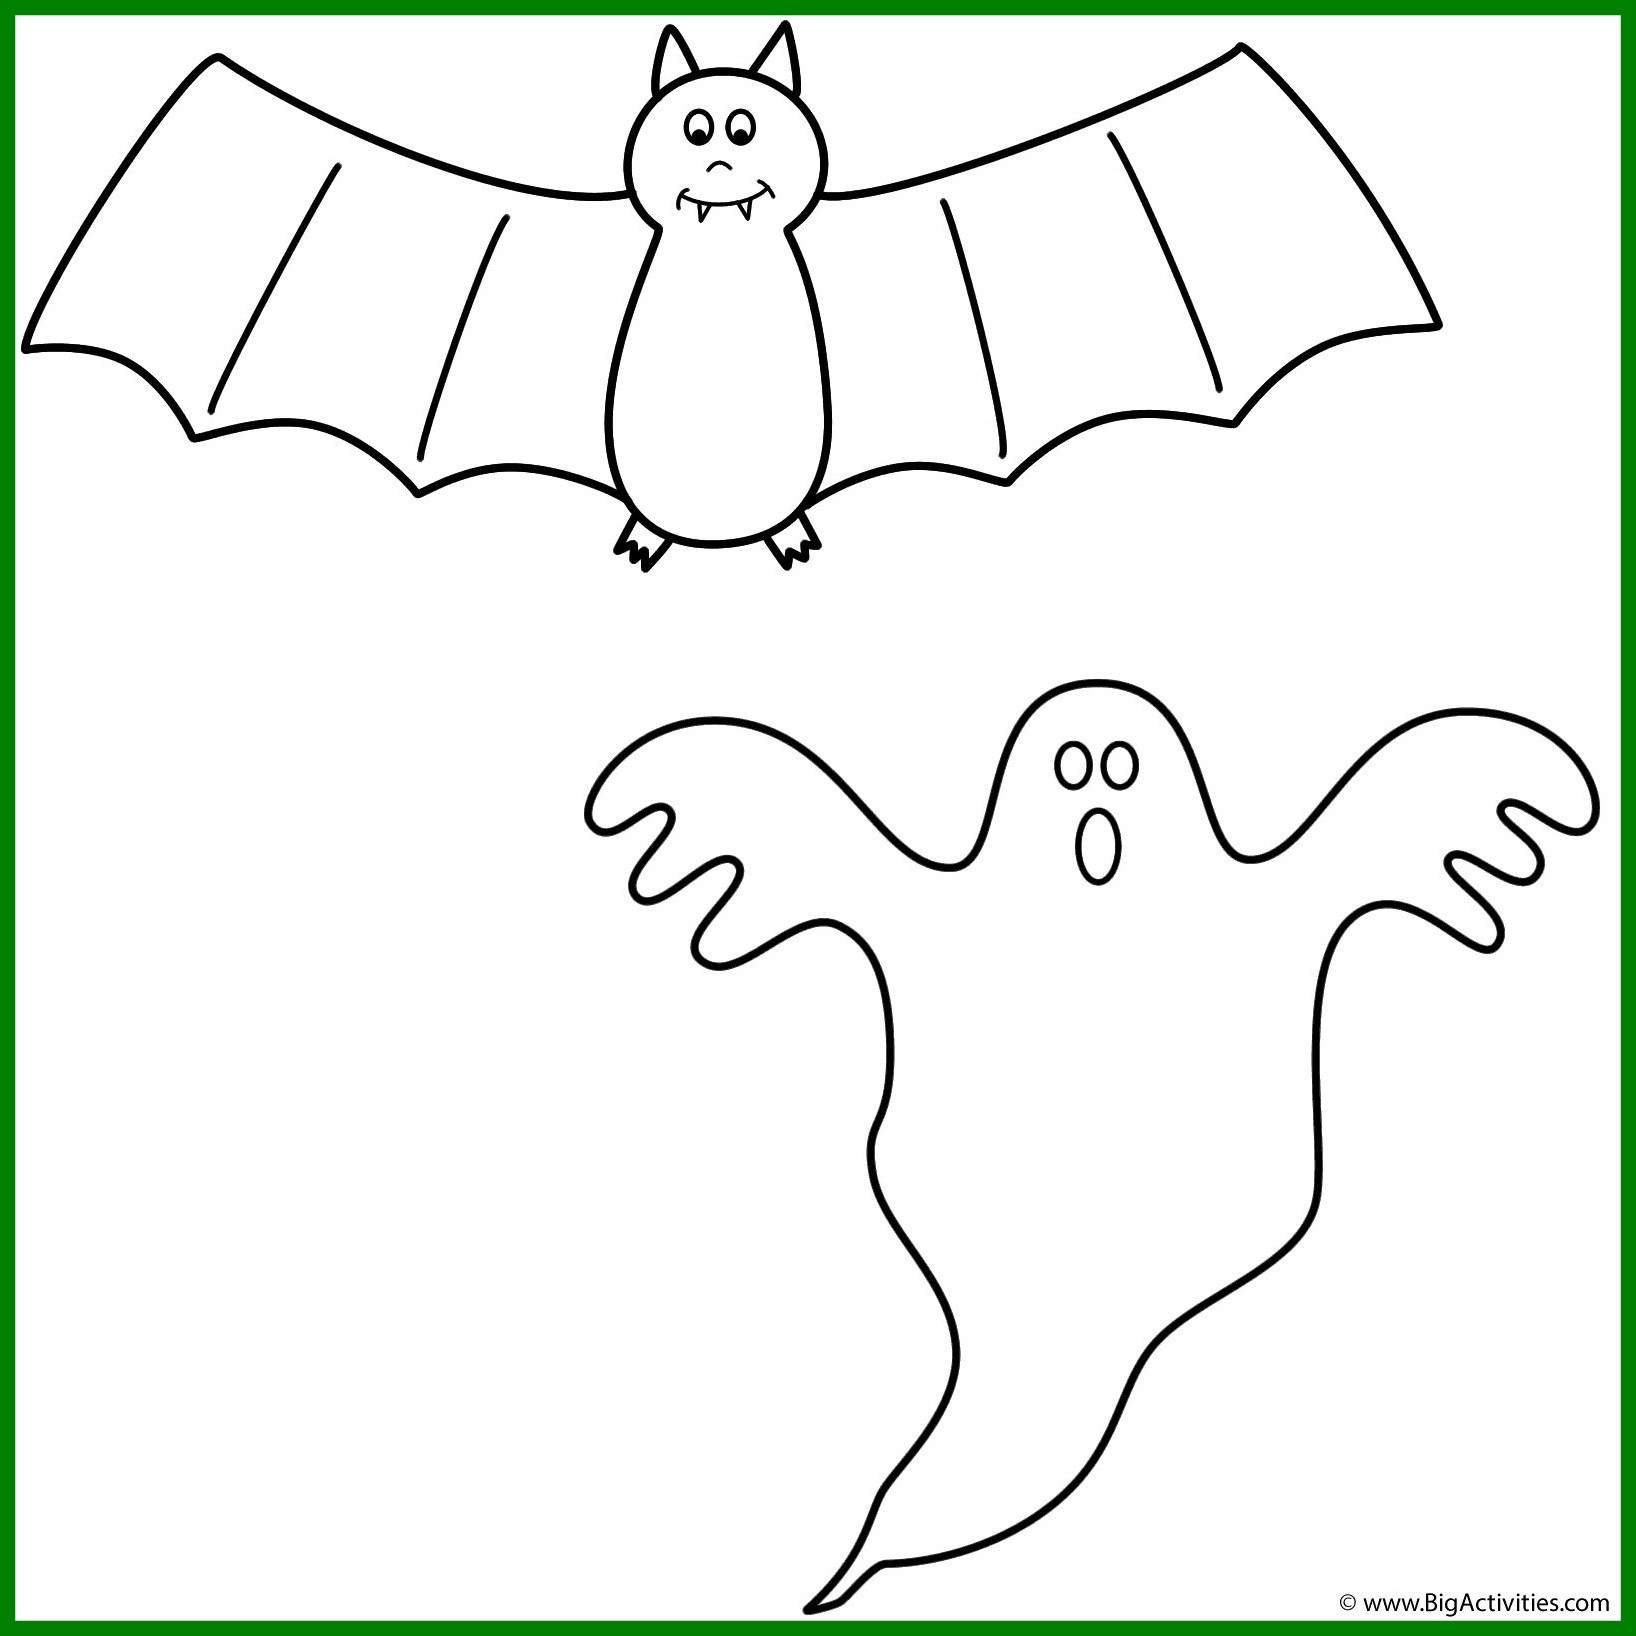 1636x1636 Incredible Halloween Adult Coloring Pages Funny To Print Image